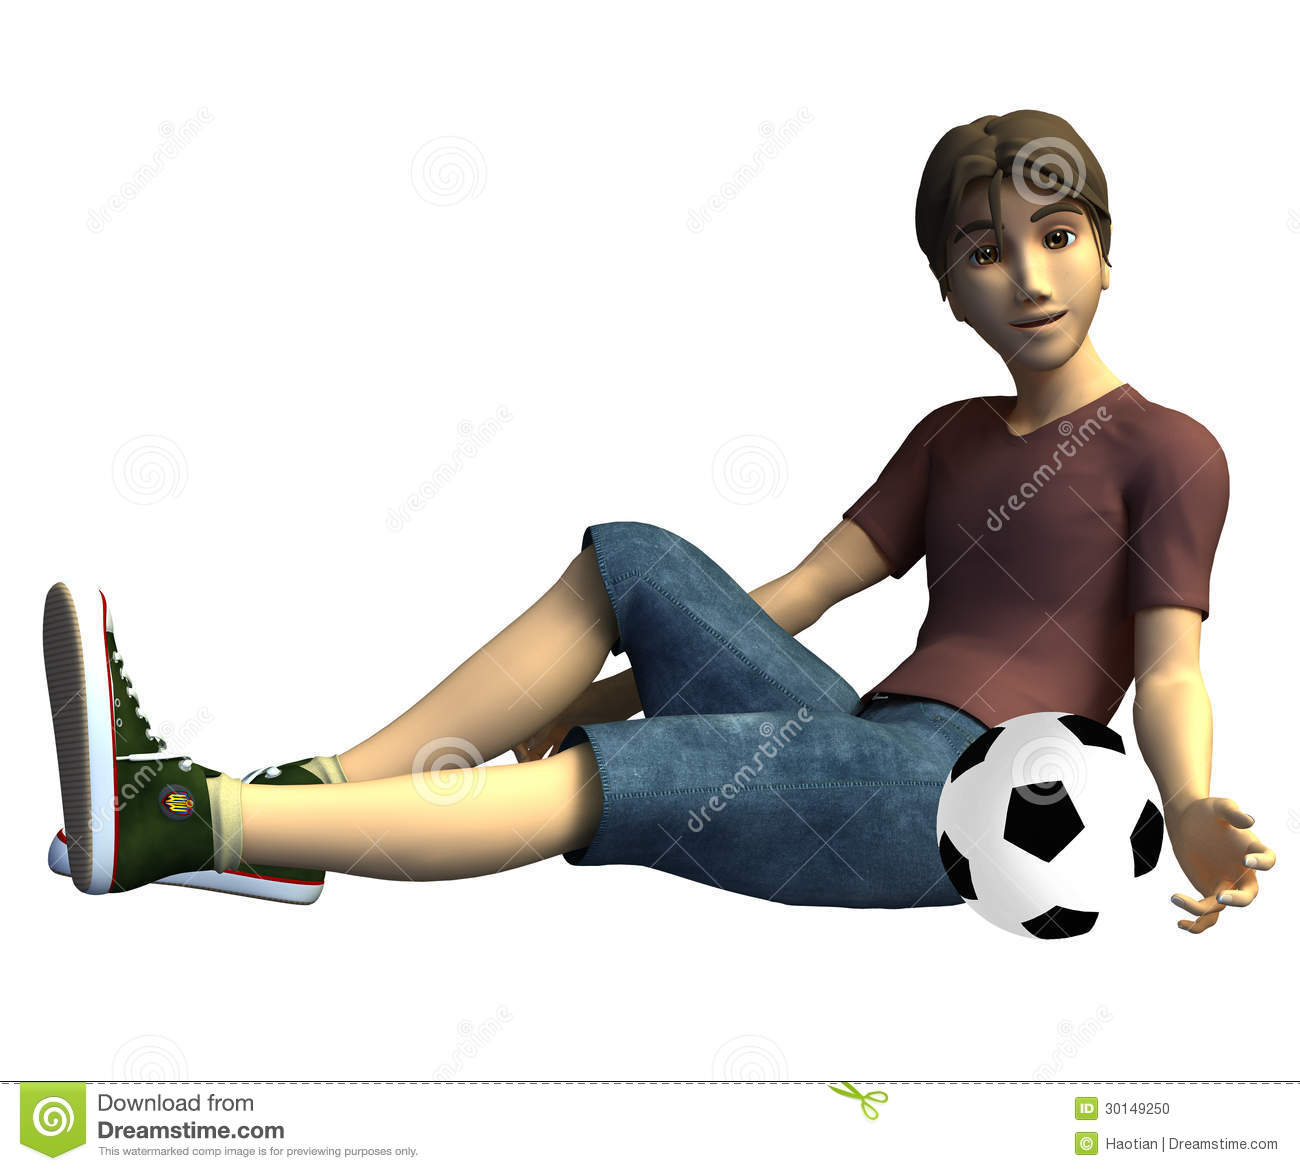 3223eebe91 3d Soccer player stock illustration. Illustration of texture - 30149250